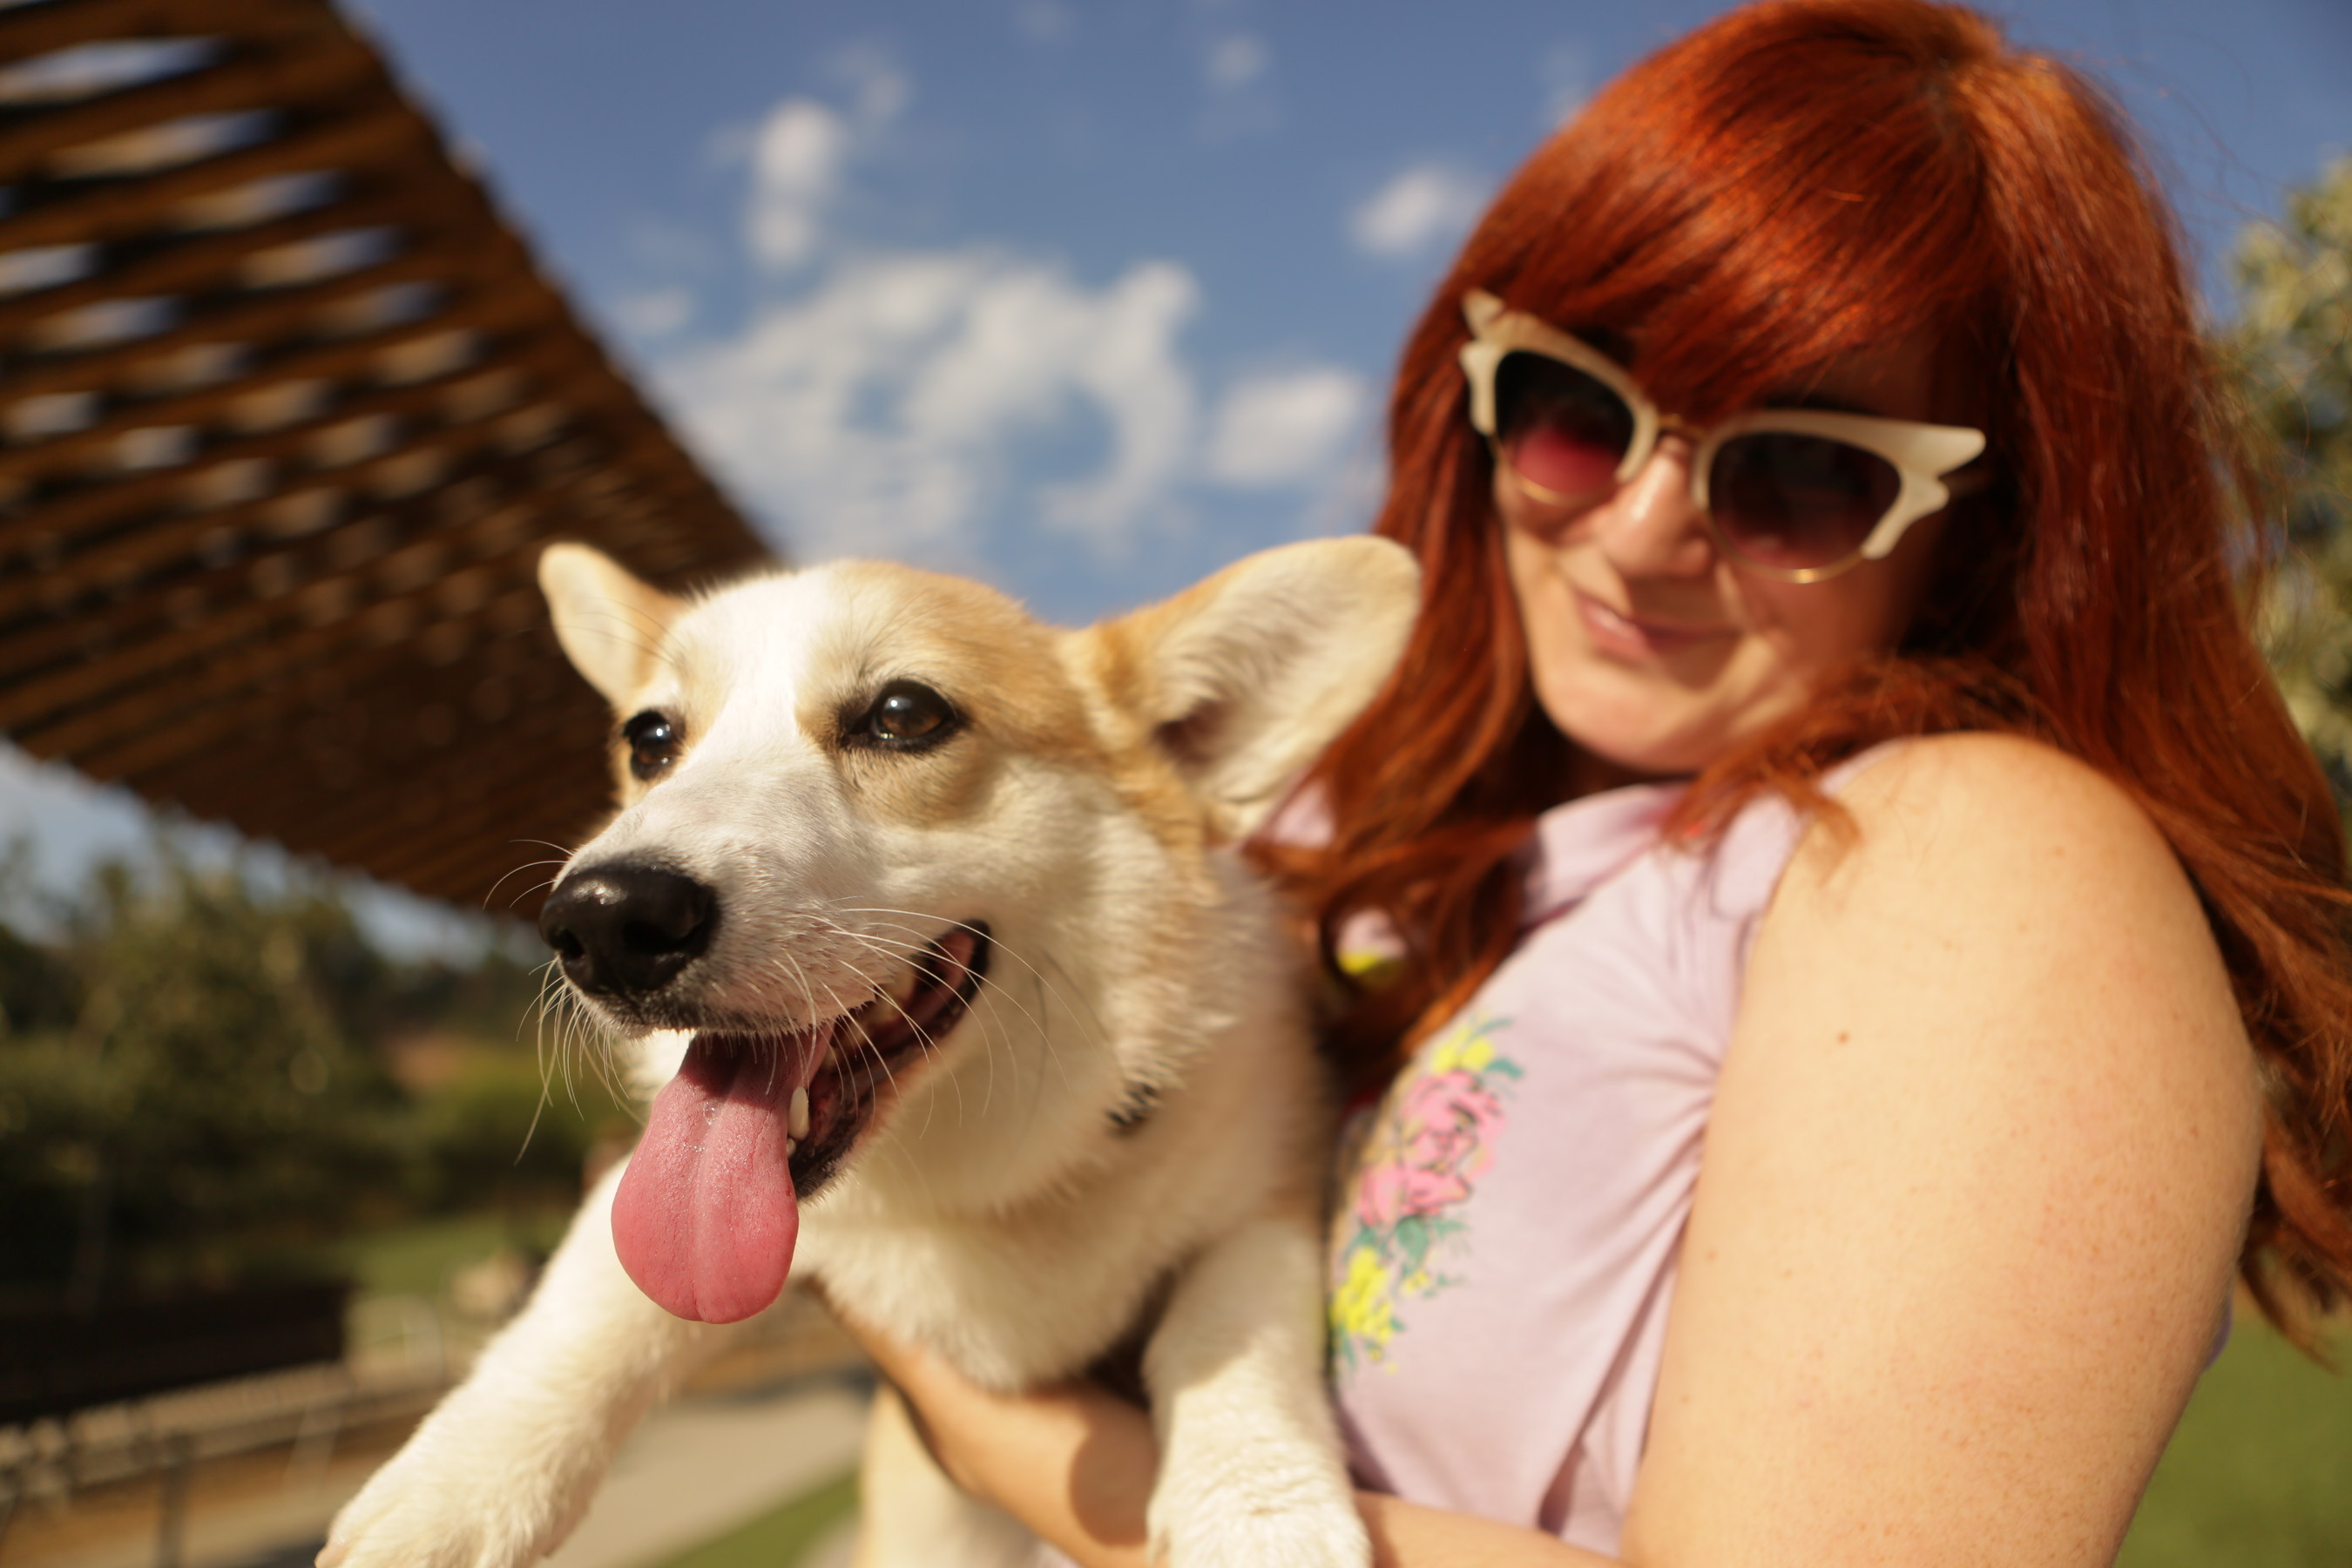 Adopt A Pet Com And The Petco Foundation Find Pets Their Forever Home With The Launch Of Rehome